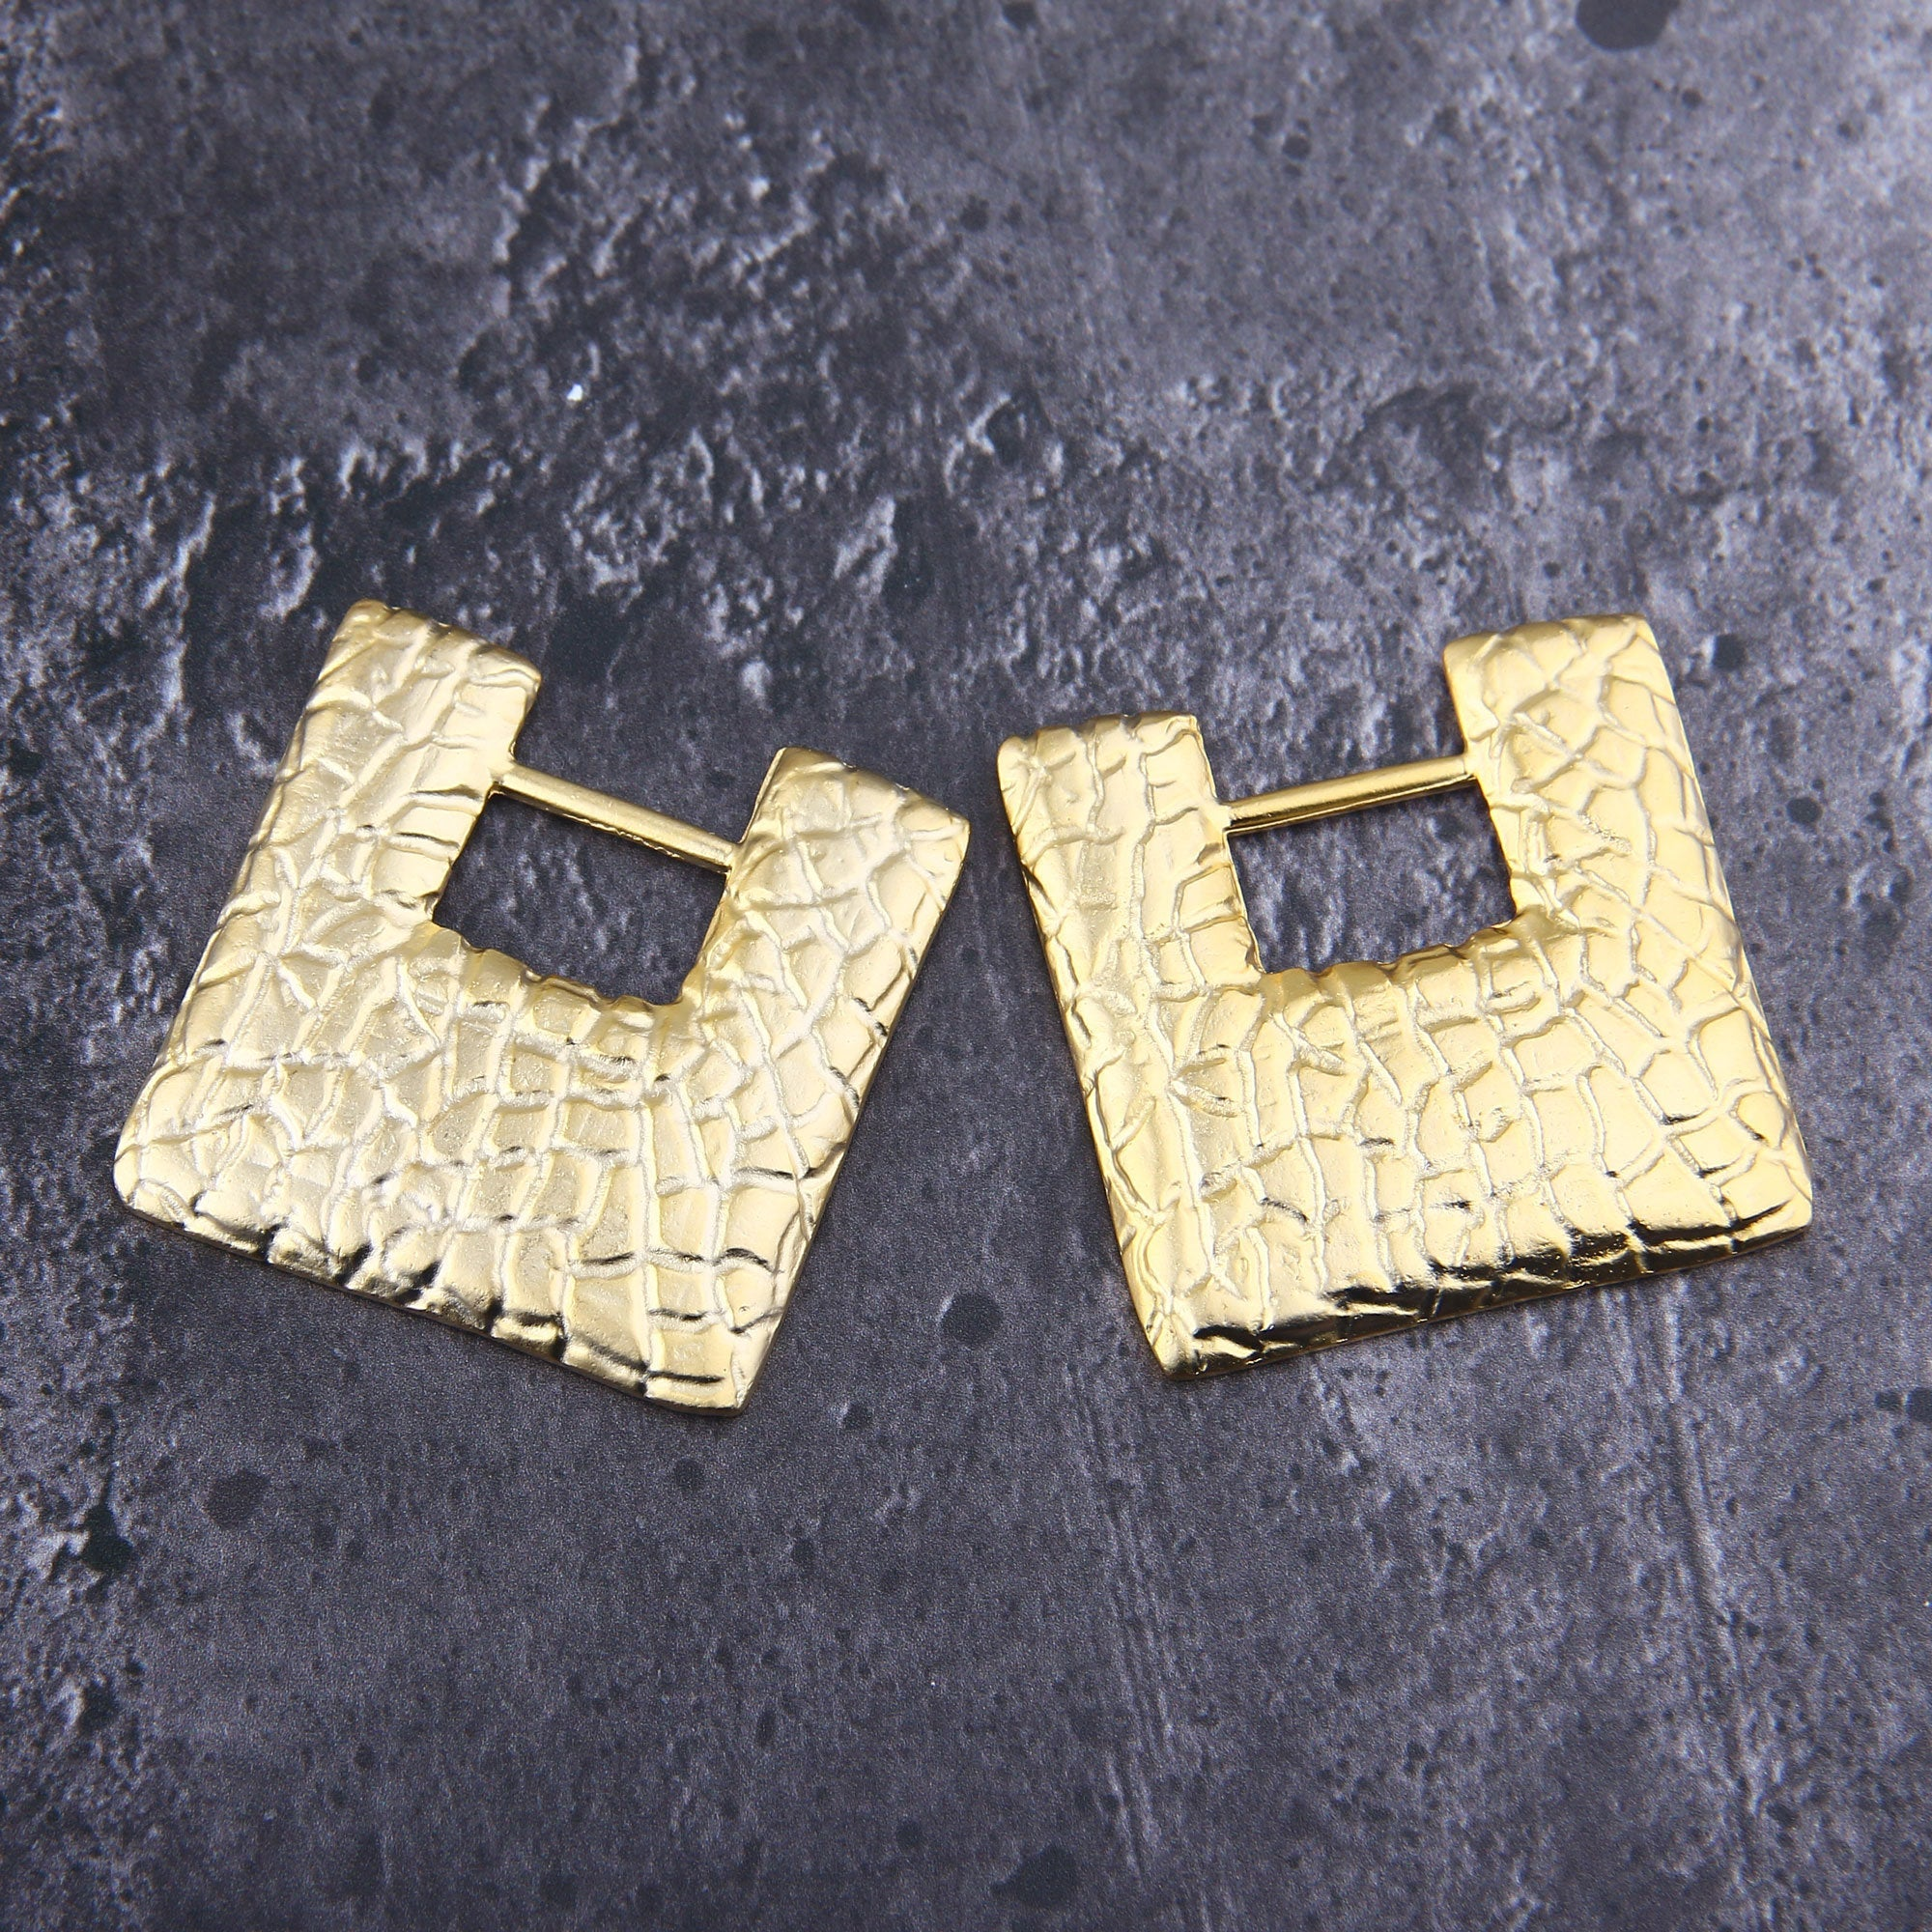 Gold Textured Earring Components, Square Earring Pendants, Snake Skin Pendants, Focal Earring, 41x41 mm, 2 pcs // GP-686